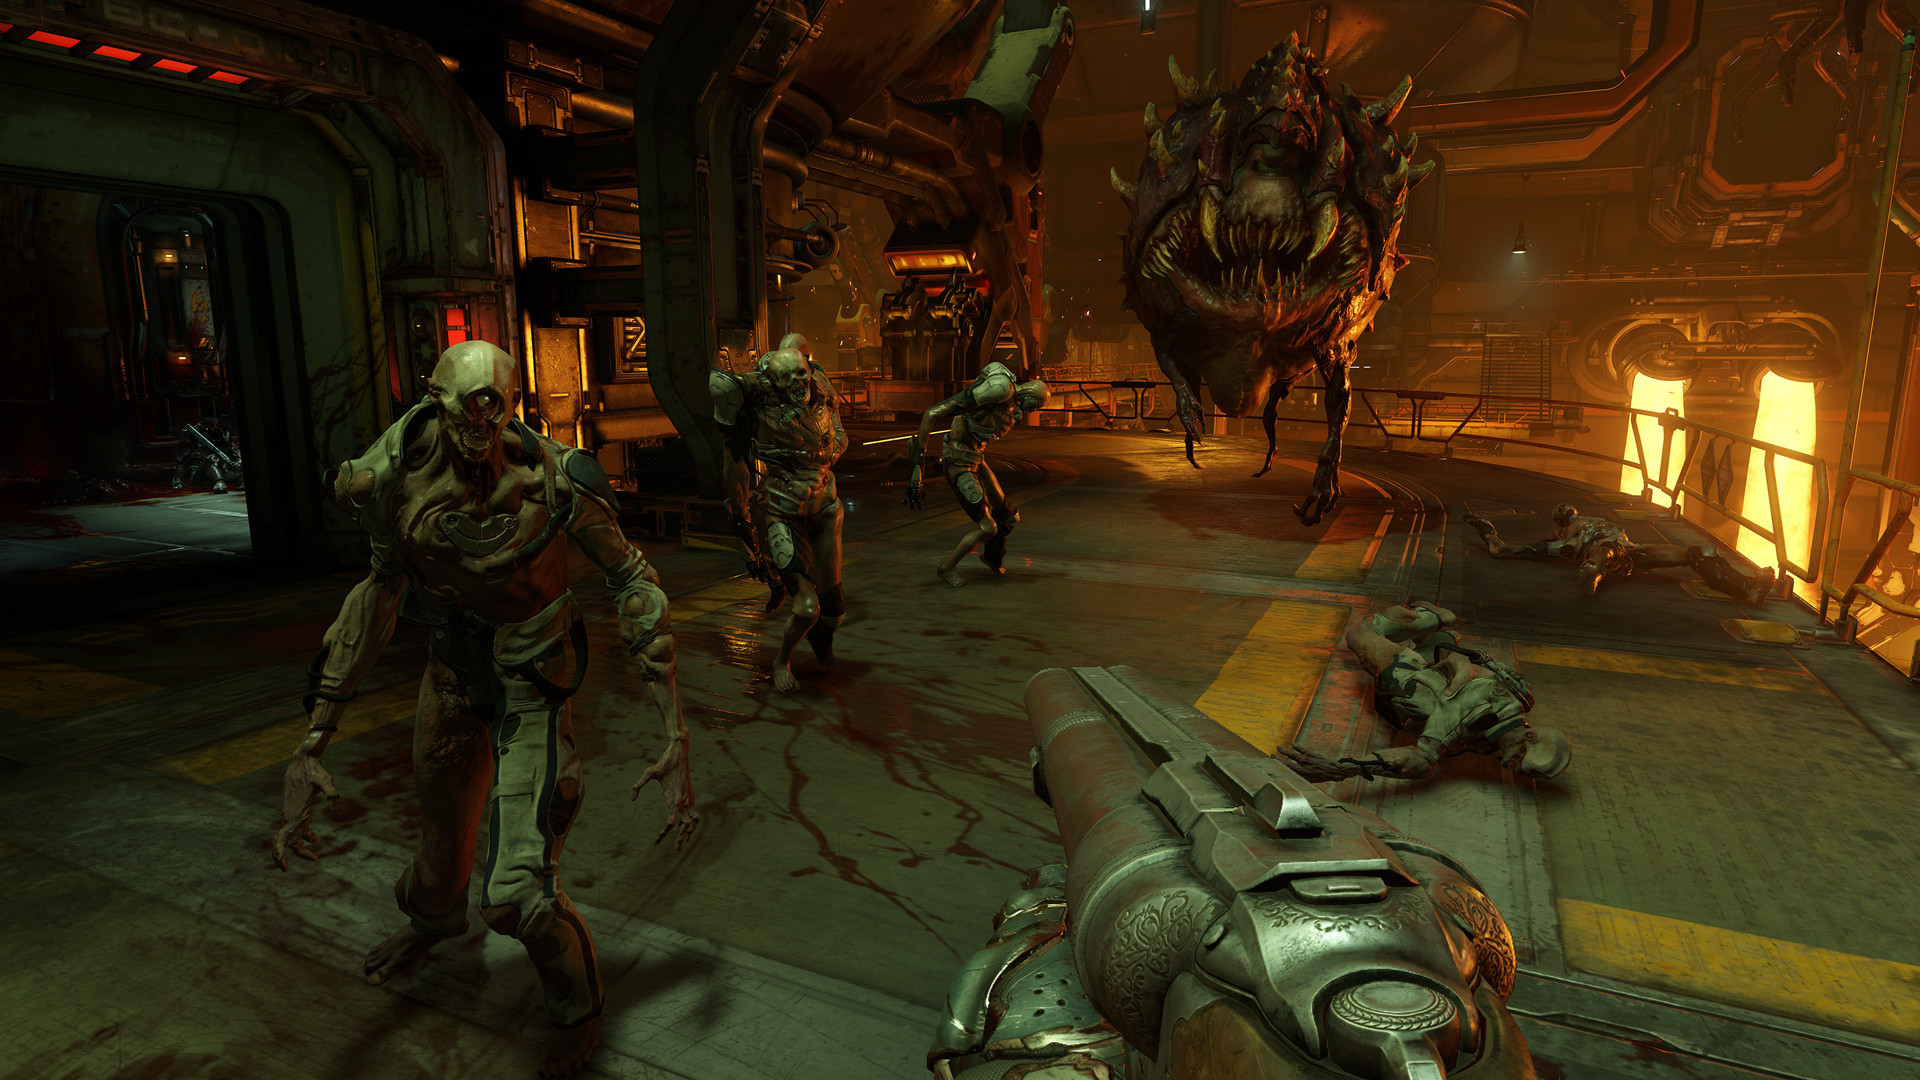 DOOM 6.66 Update Makes Season Pass DLC Free and Revises Multiplayer Progression